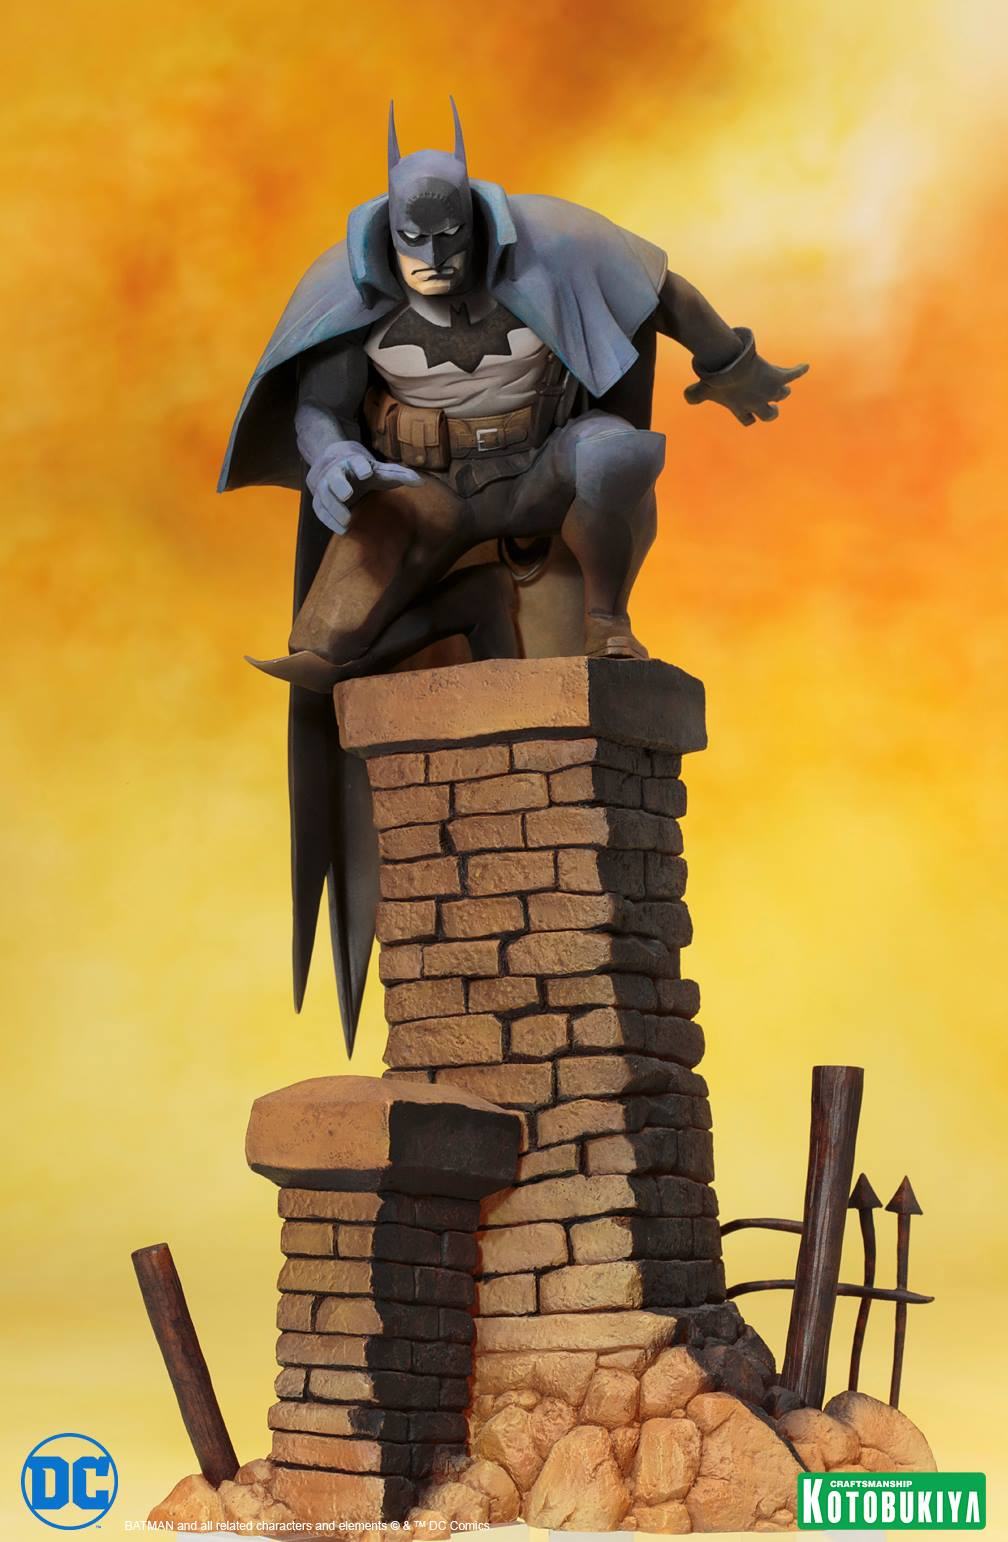 Kotobukiya - ARTFX+ - DC Comics - Batman: Gotham by Gaslight